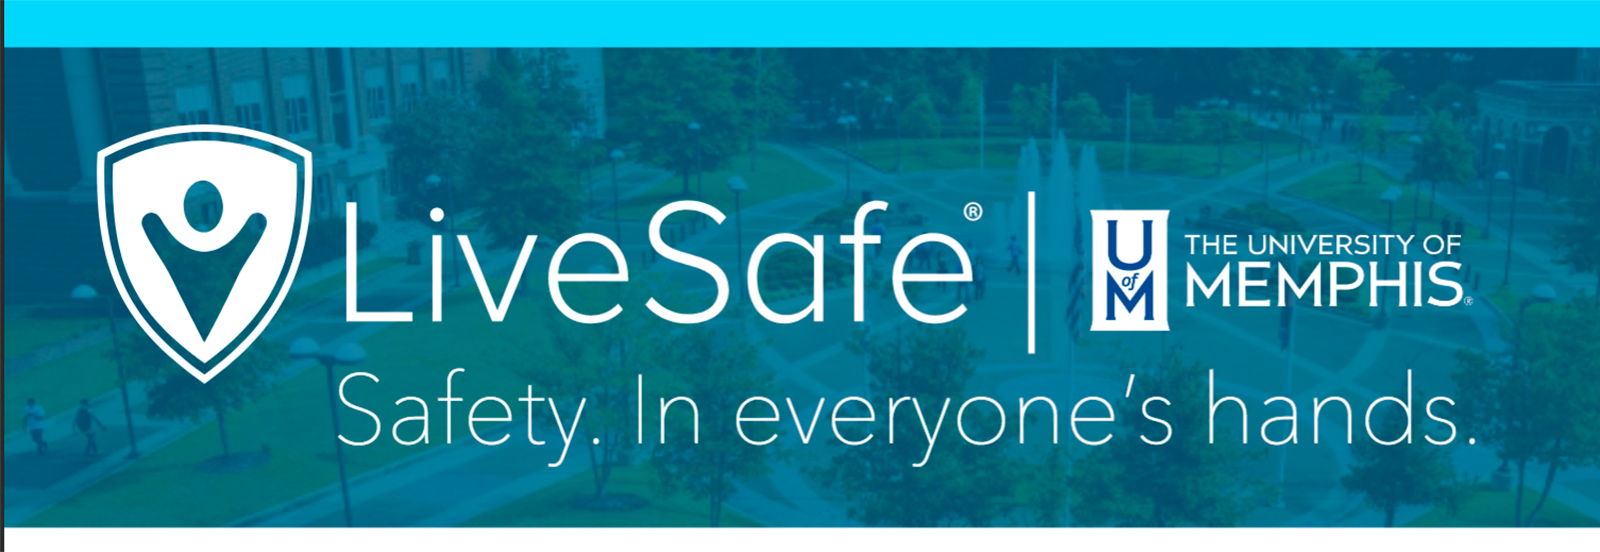 LiveSafe - Safety. In everyone's hands.